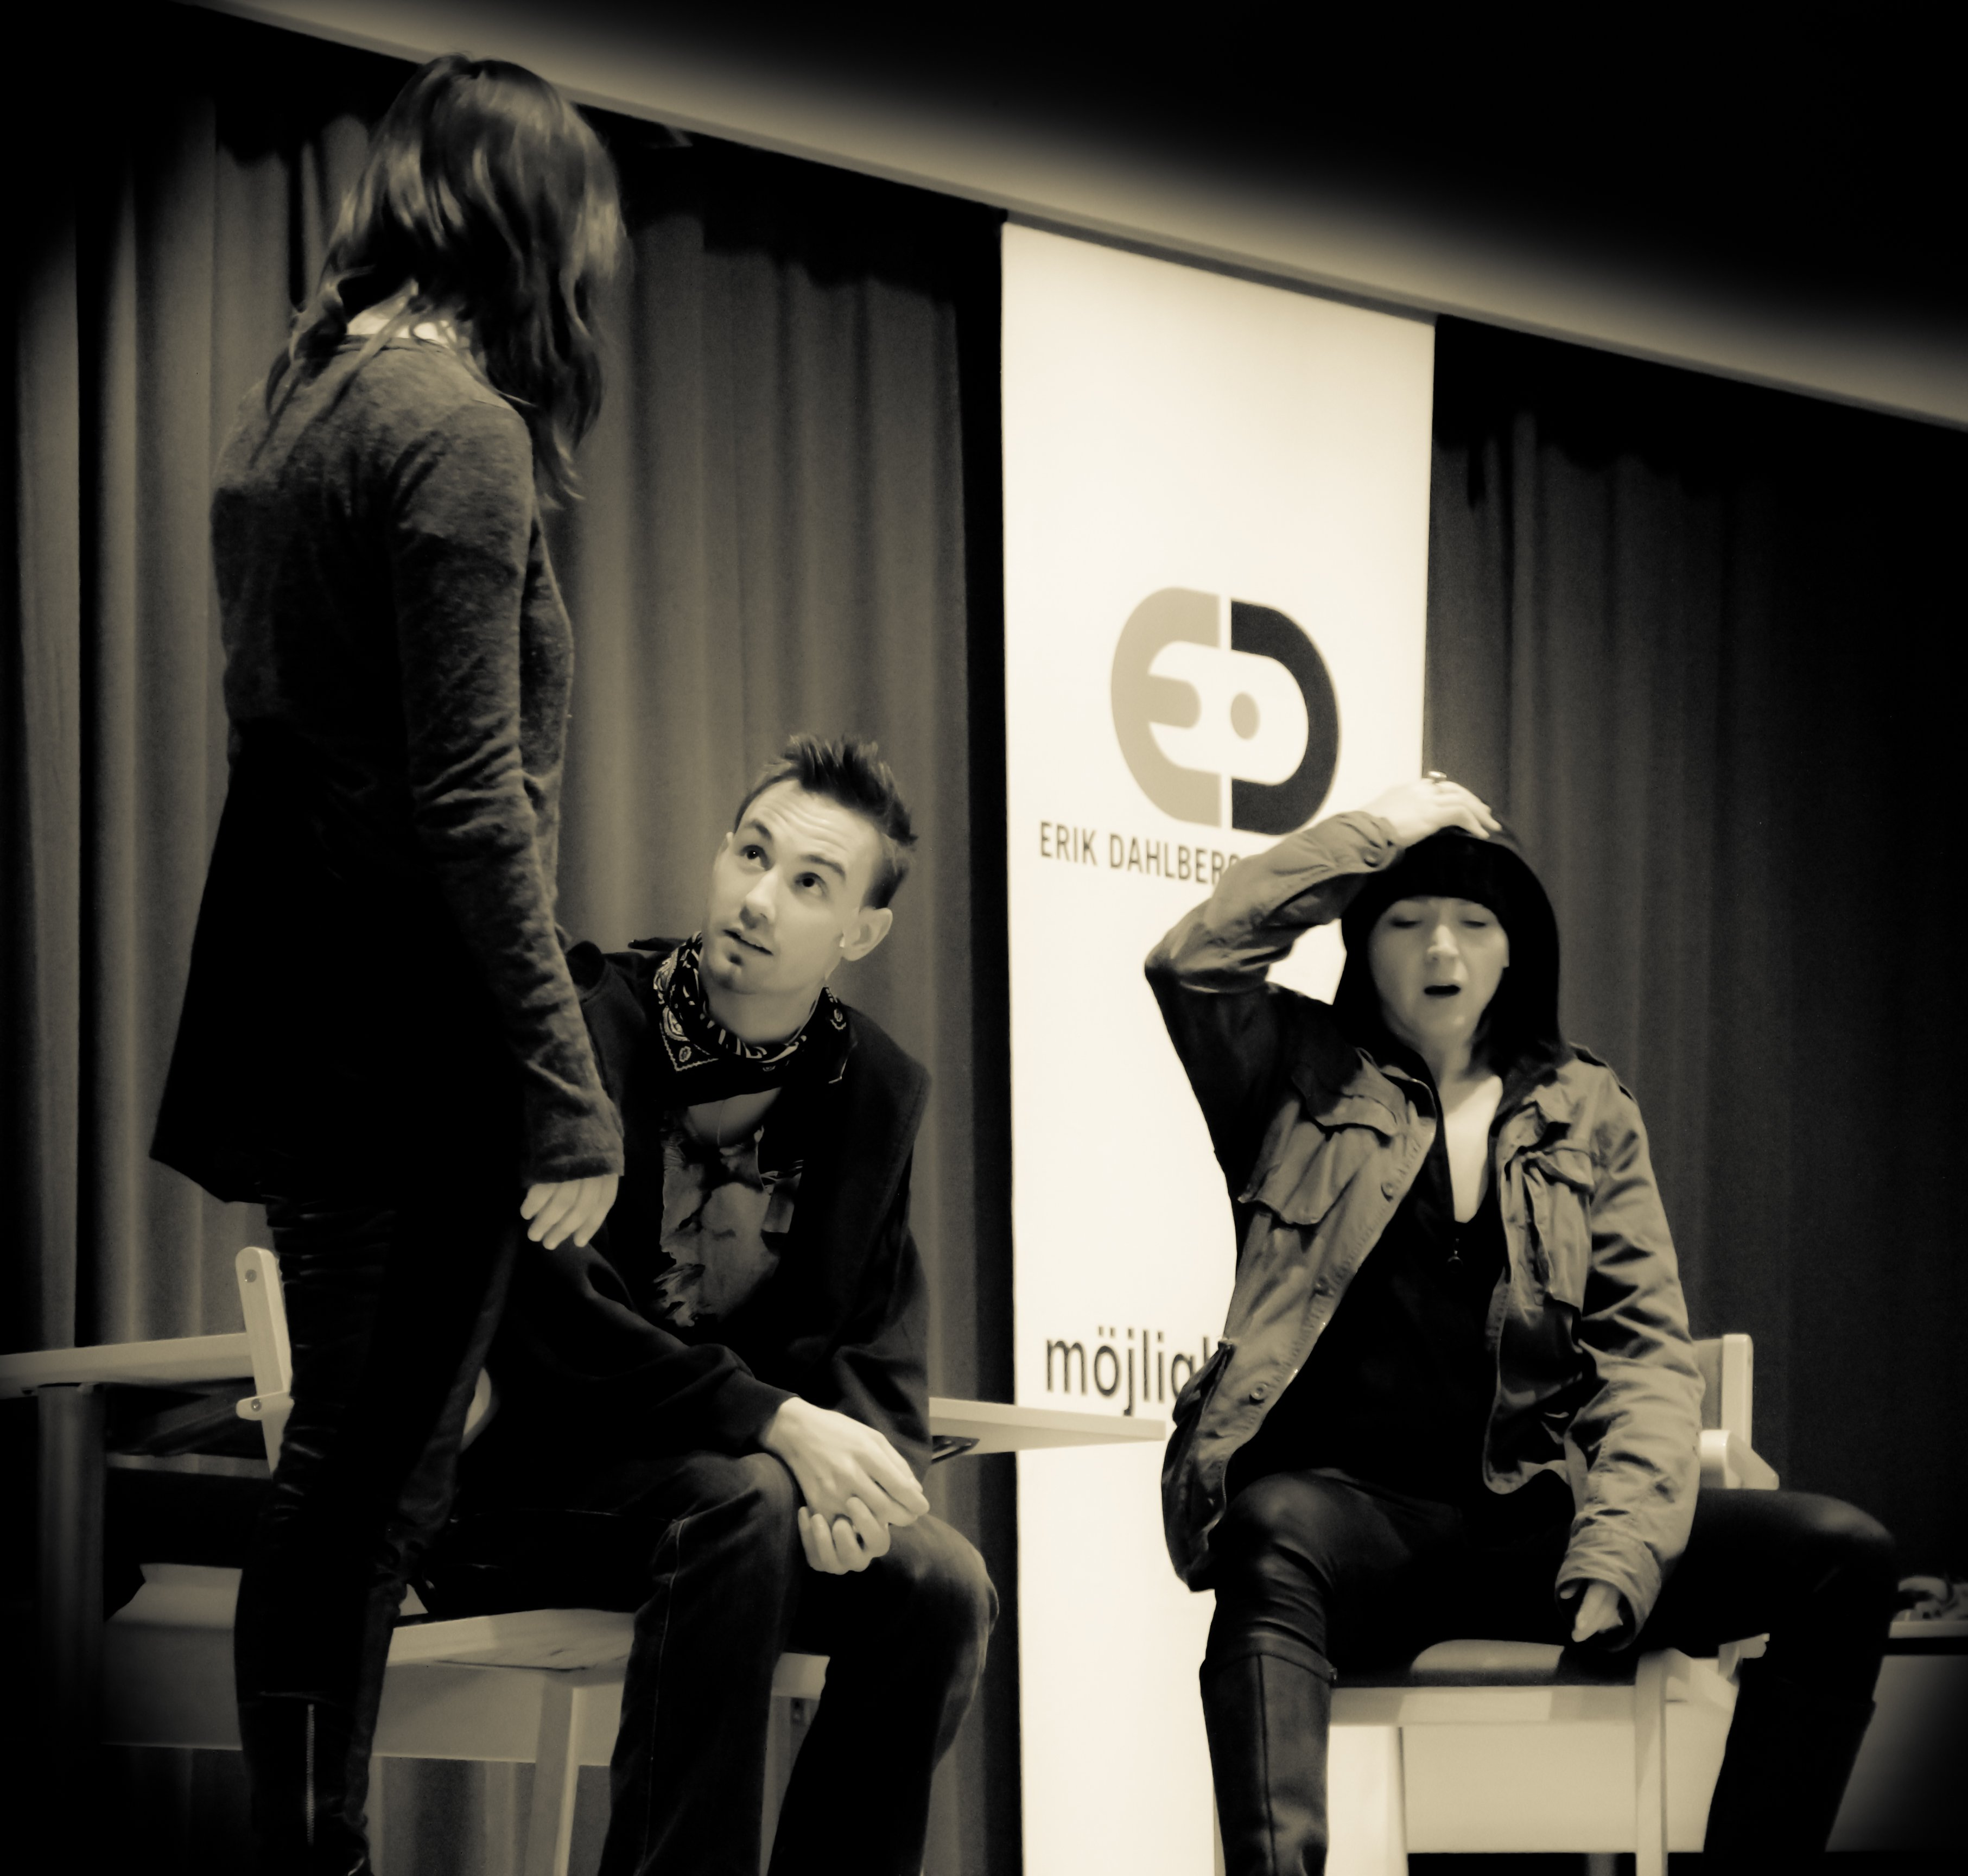 Scene from a play about bullying